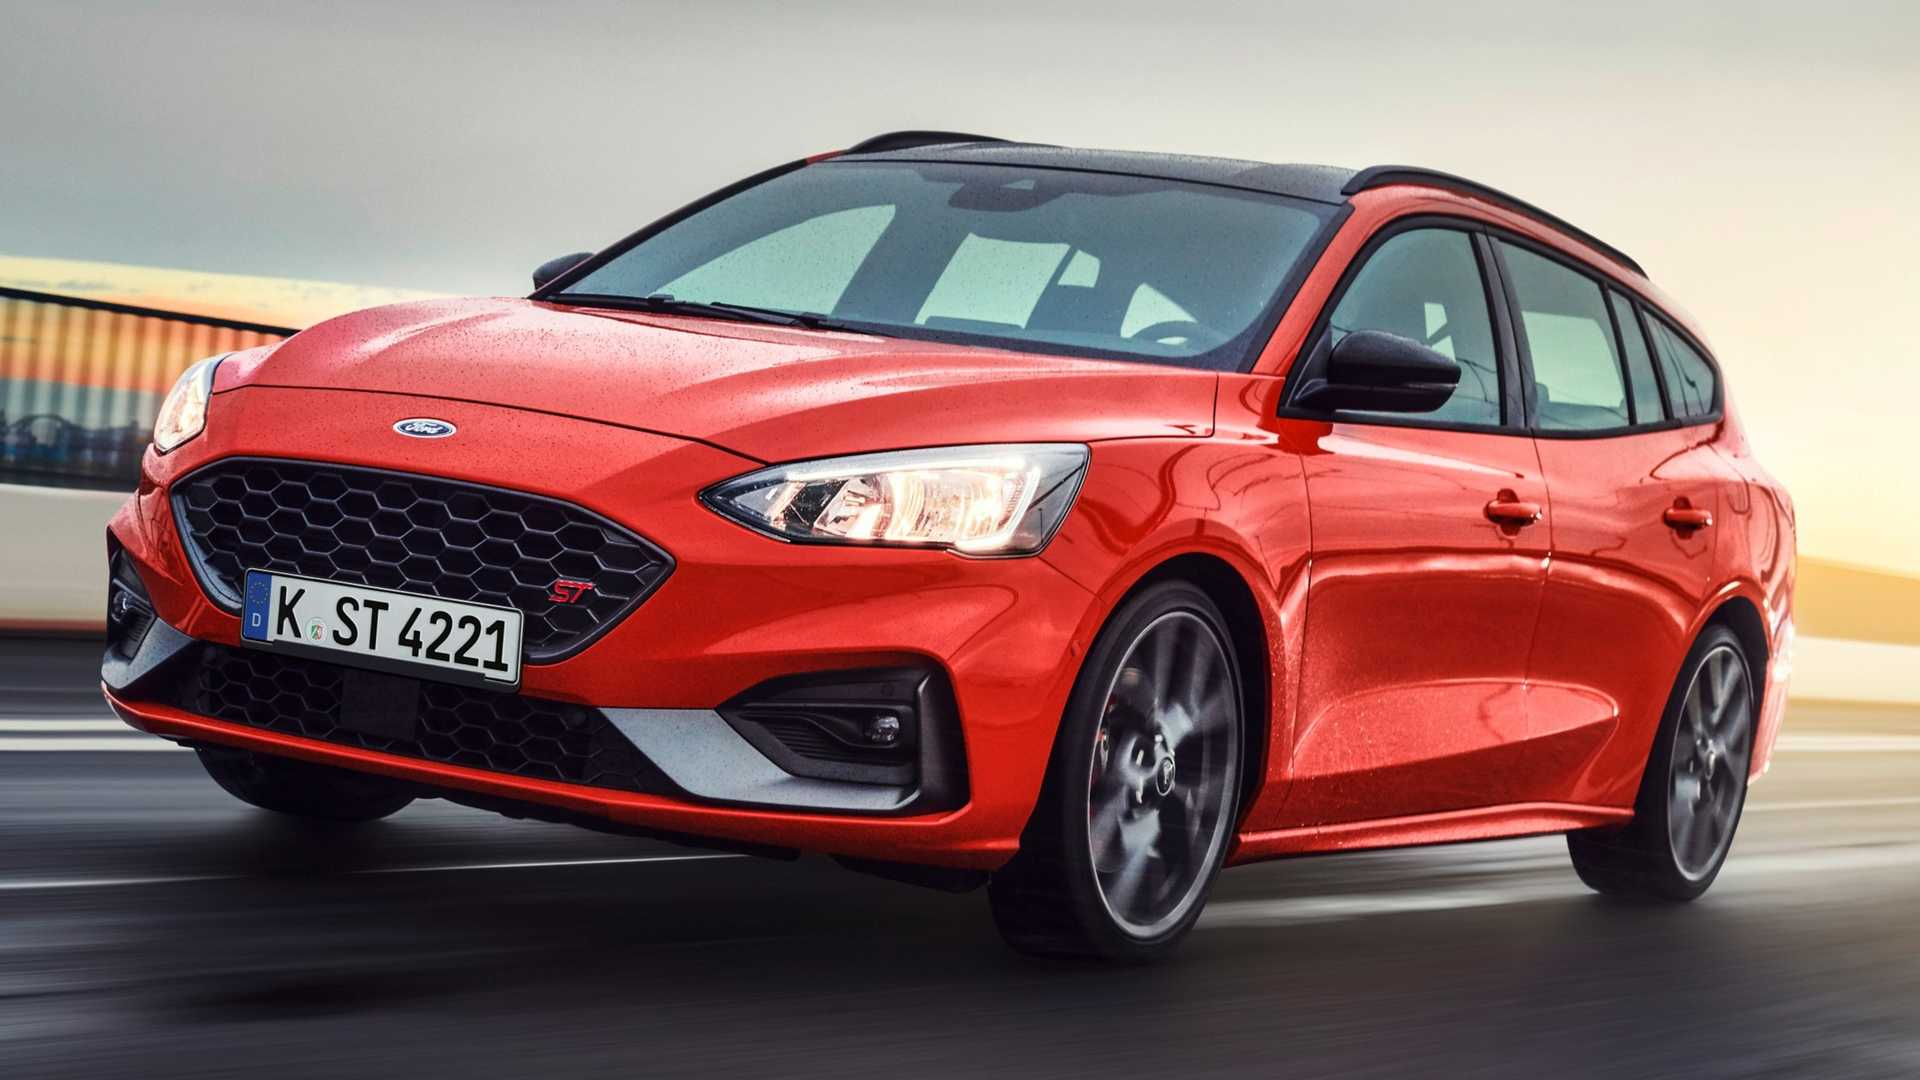 2019-ford-focus-st-wagon-5